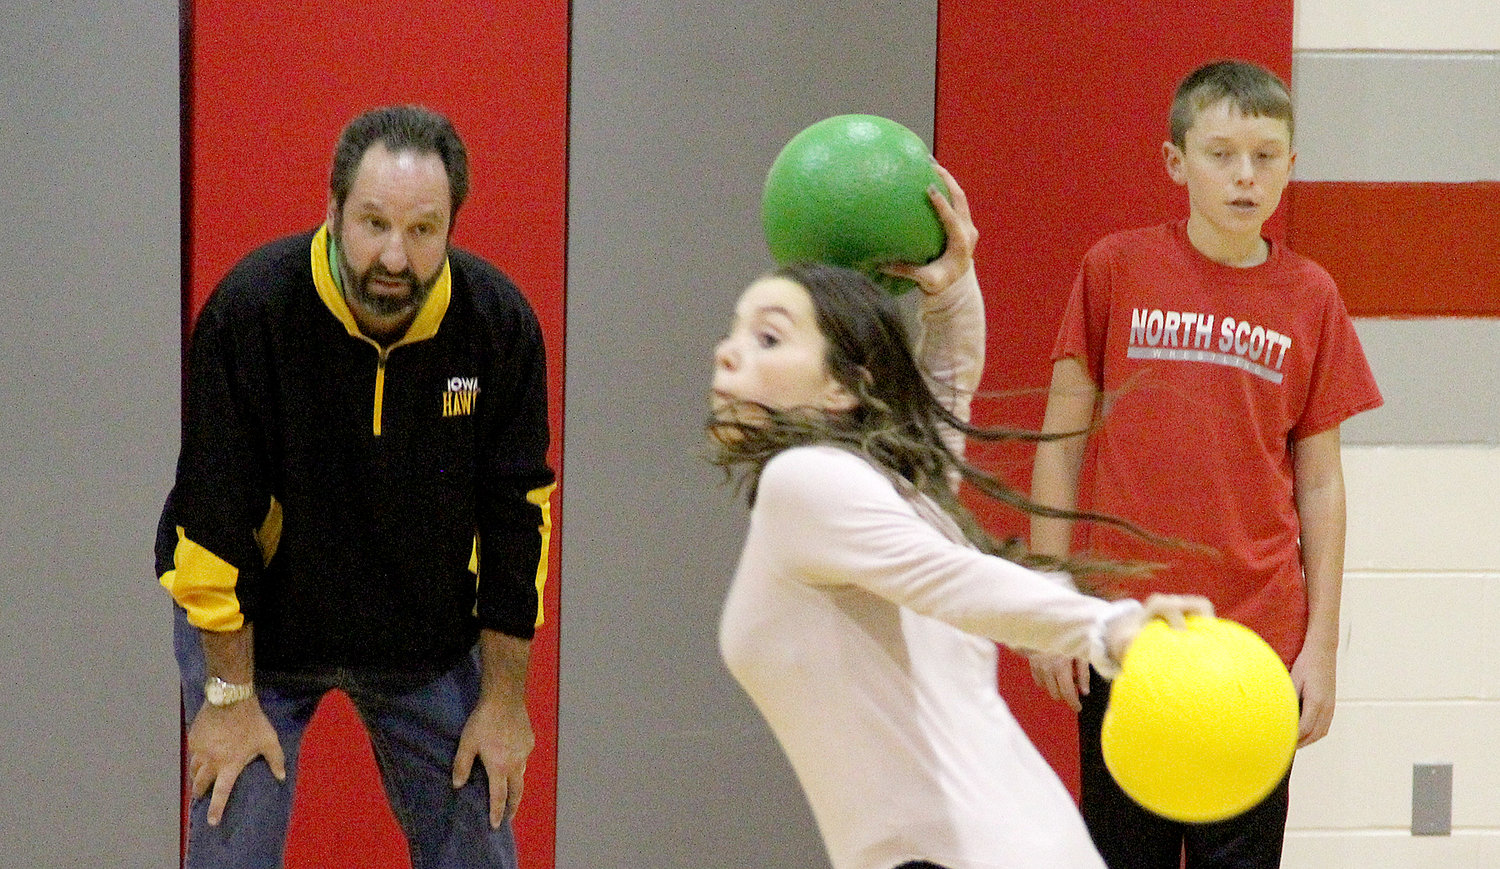 Mr. Dave Koranda (left) keeps a watchful eye on this fast-paced game of dodge ball.